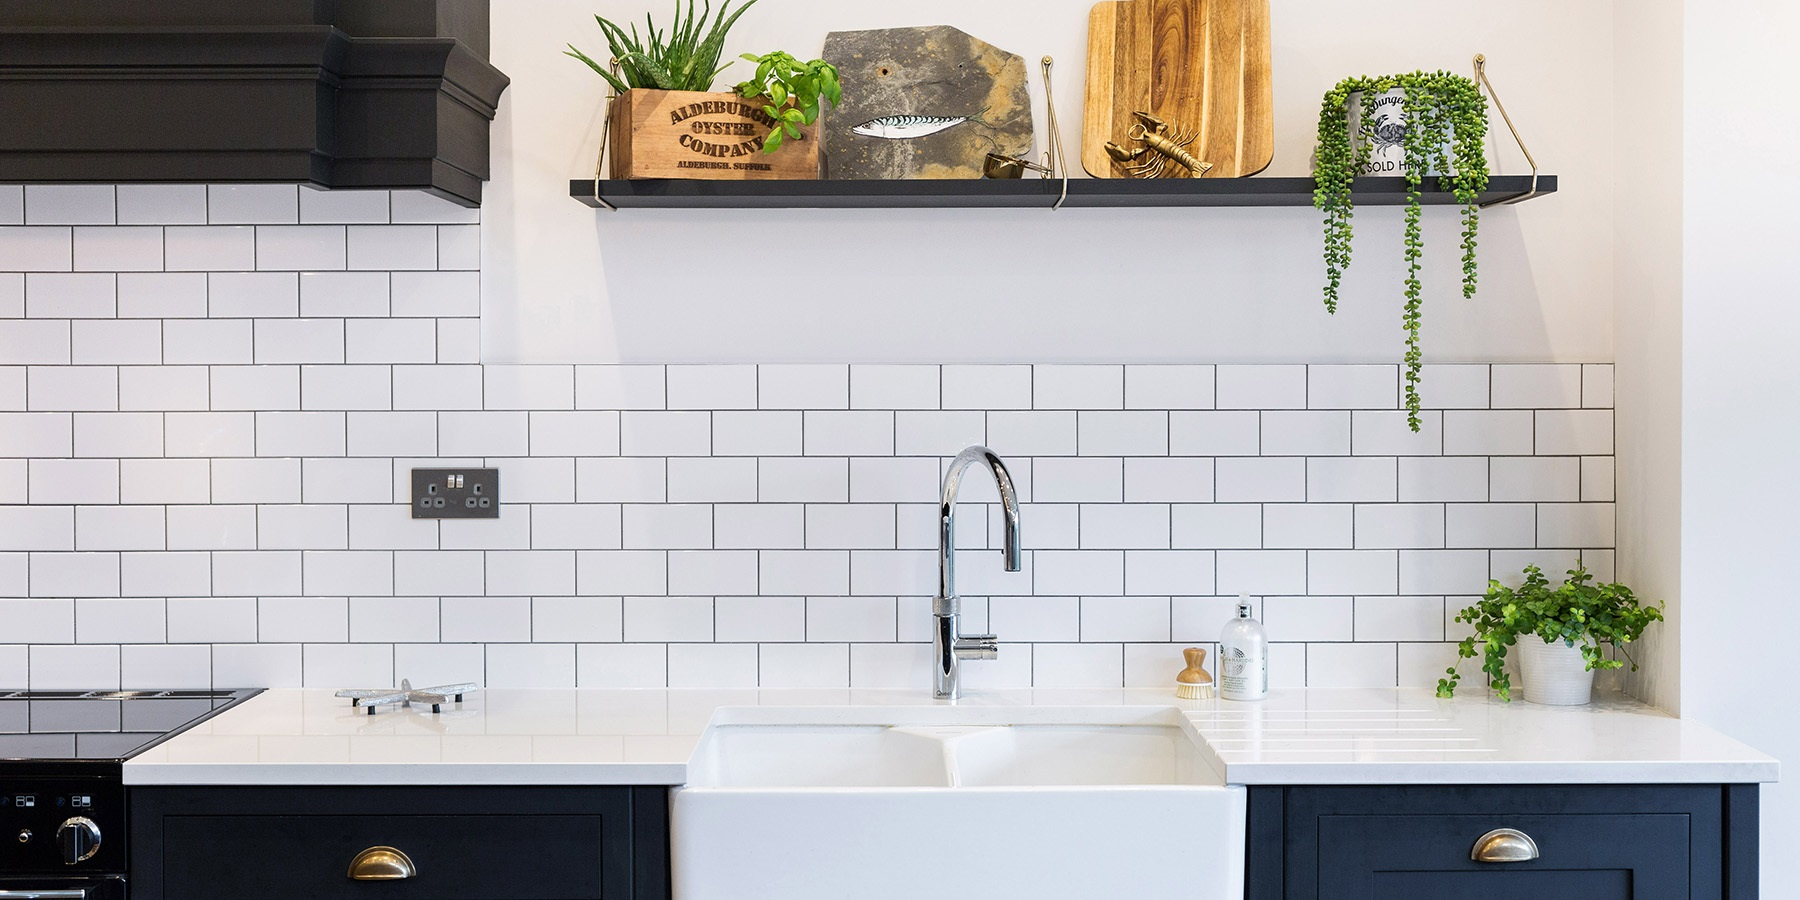 Nautical Themed Shaker Kitchen - Burlanes handmade Hoyden kitchen with belfast sink, Quooker boiling water tap and beautiful white metro tiles.